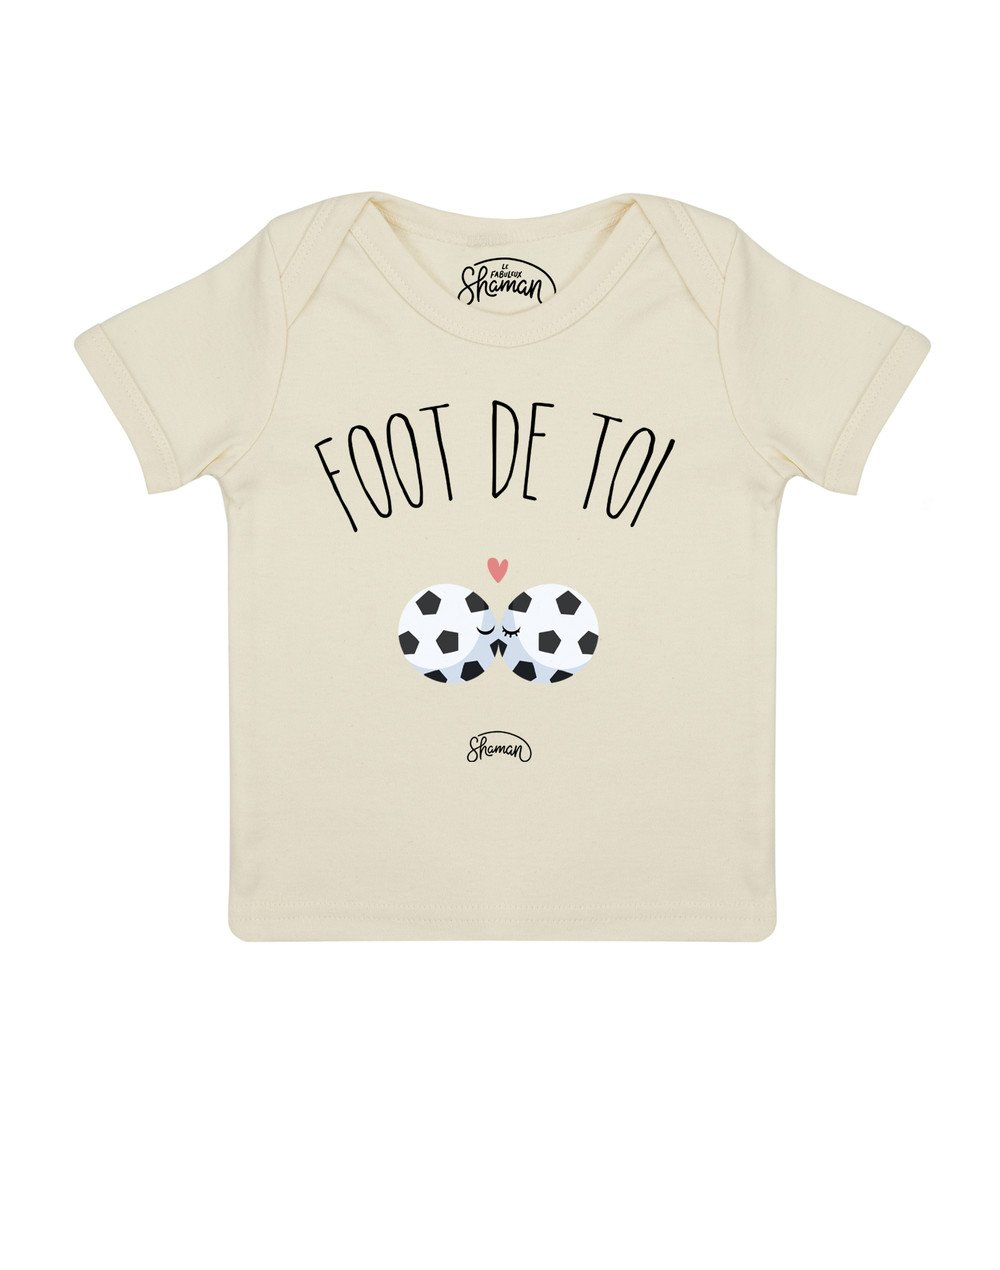 Tee shirt Foot de toi